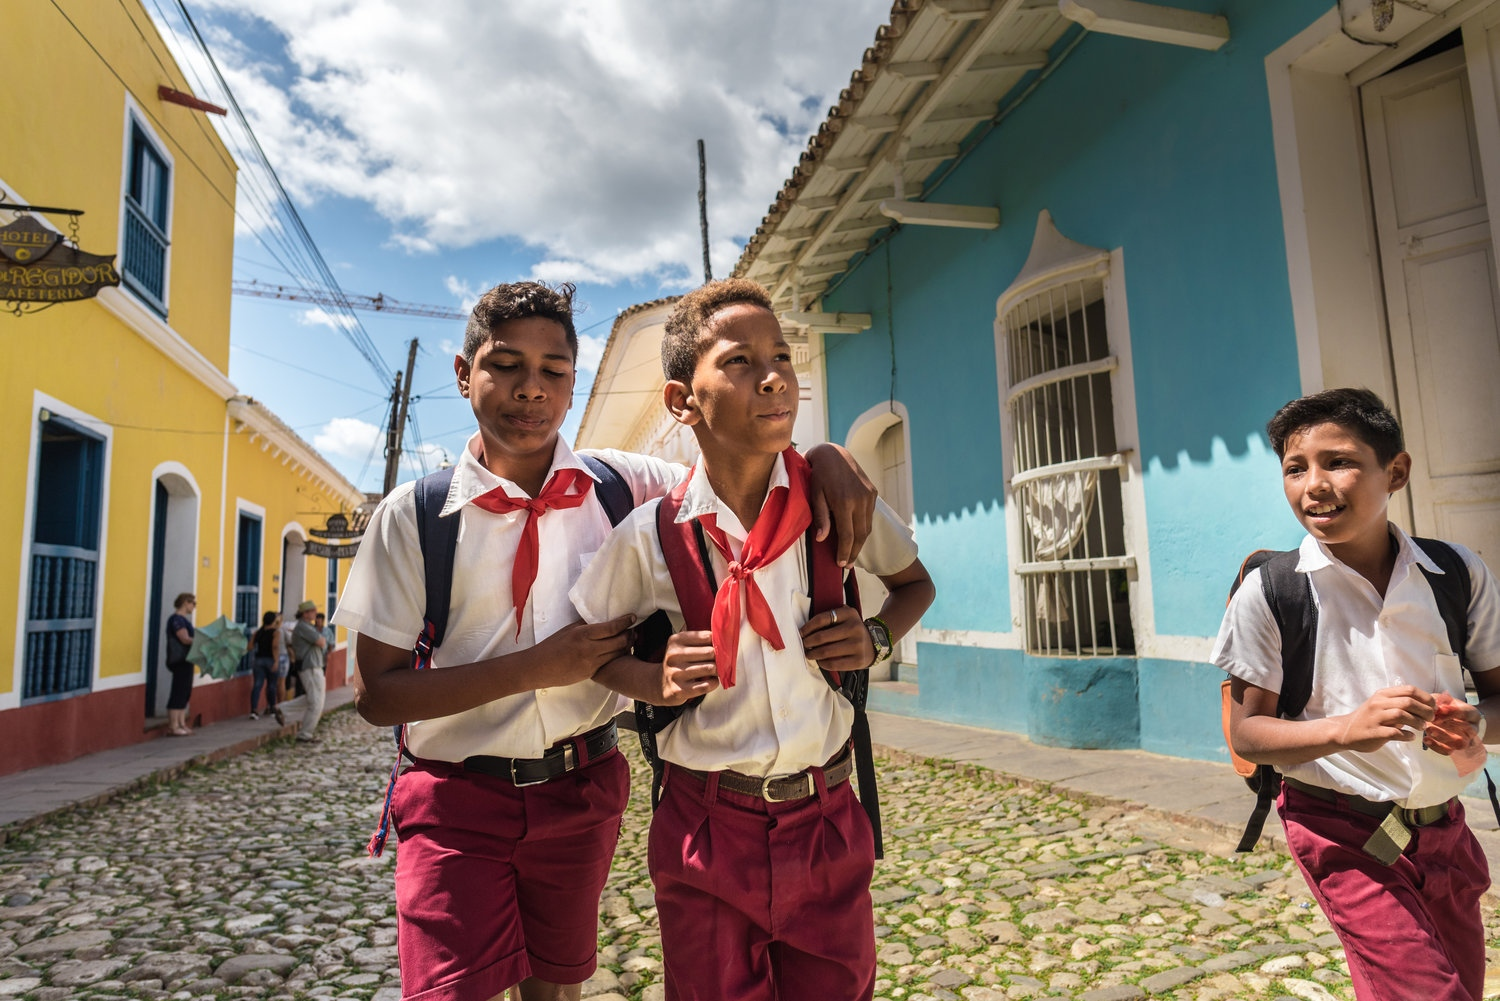 School children in Trinidad Public Education in Cuba  is free and it has been a highly ranked system for many years. The University of Havana was founded in 1727 and there are a number of other well-established colleges and universities. Following the 1959 revolution, the Castro regime nationalized all educational institutions, and created a system operated entirely by the government. Education expenditures continue to receive high priority